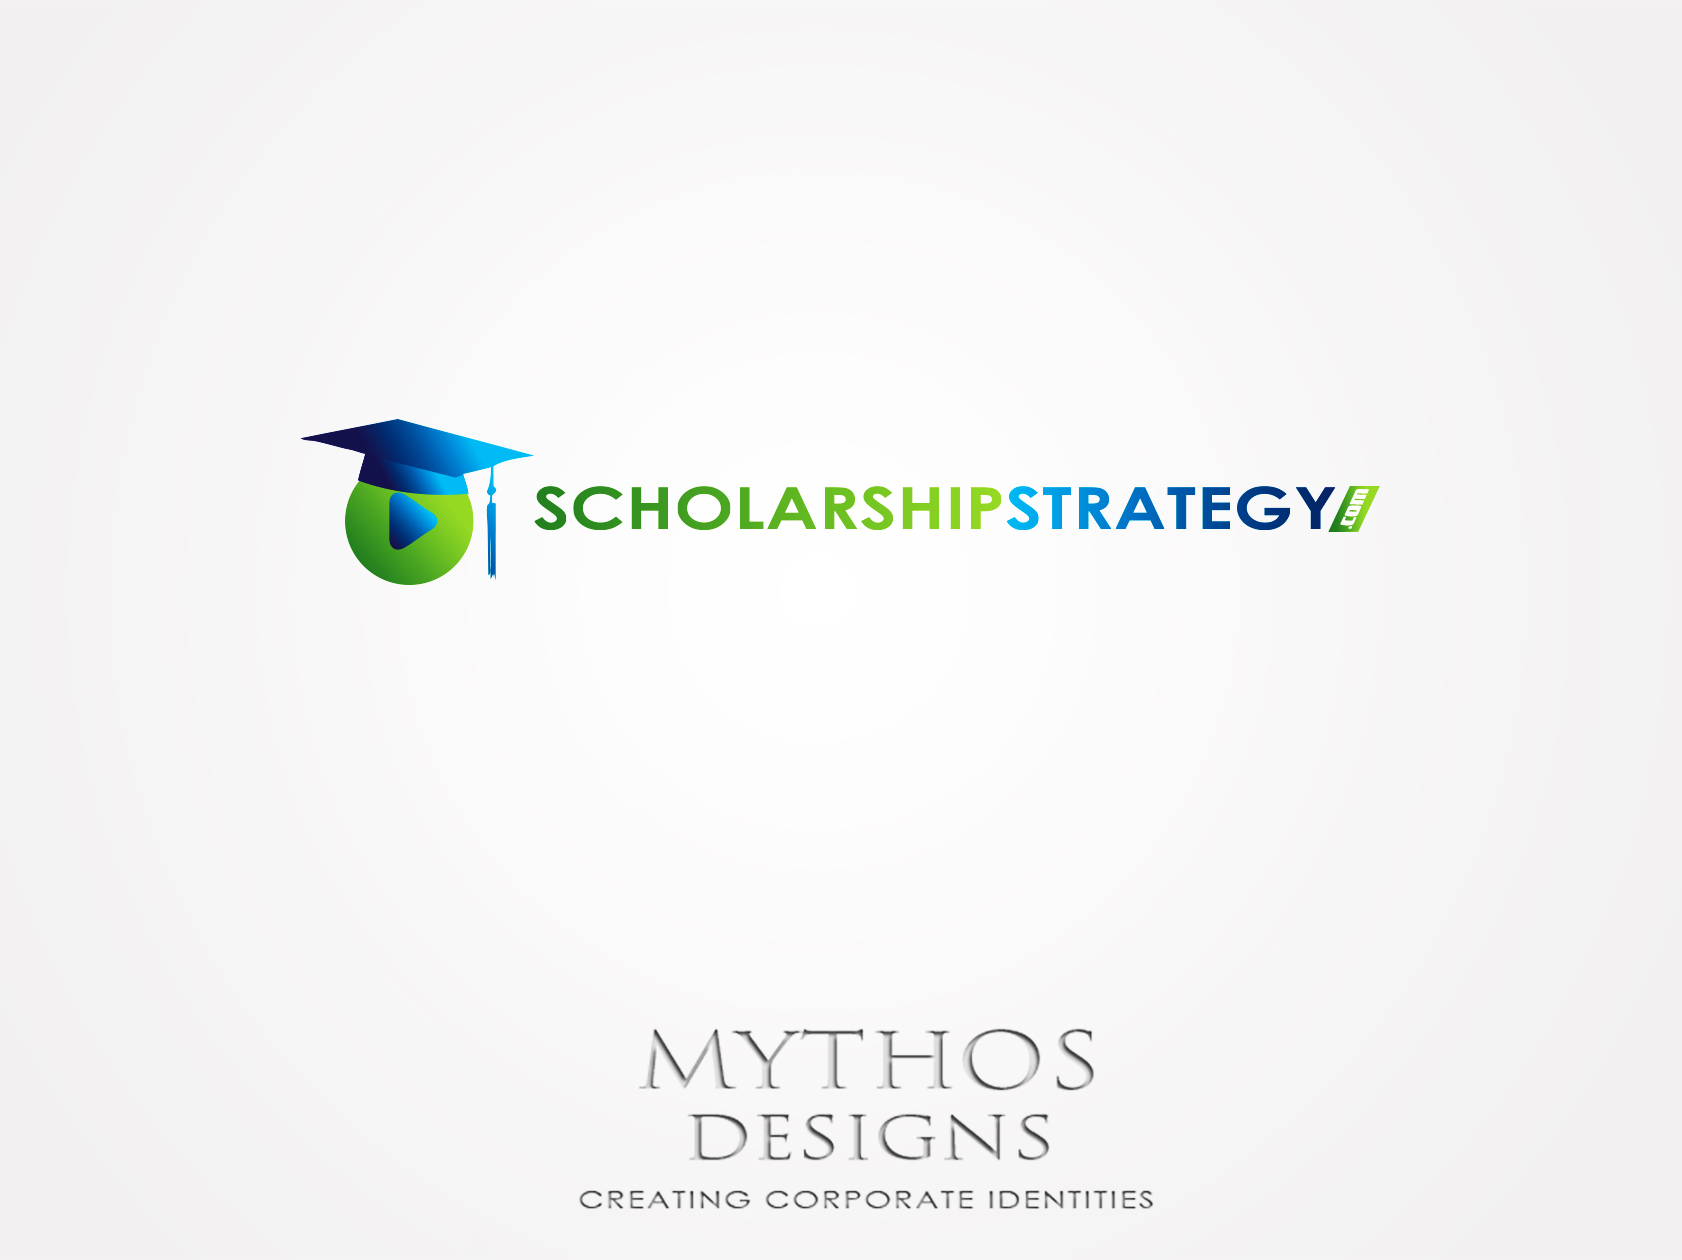 Logo Design by Mythos Designs - Entry No. 63 in the Logo Design Contest Captivating Logo Design for Scholarshipstrategy.com.